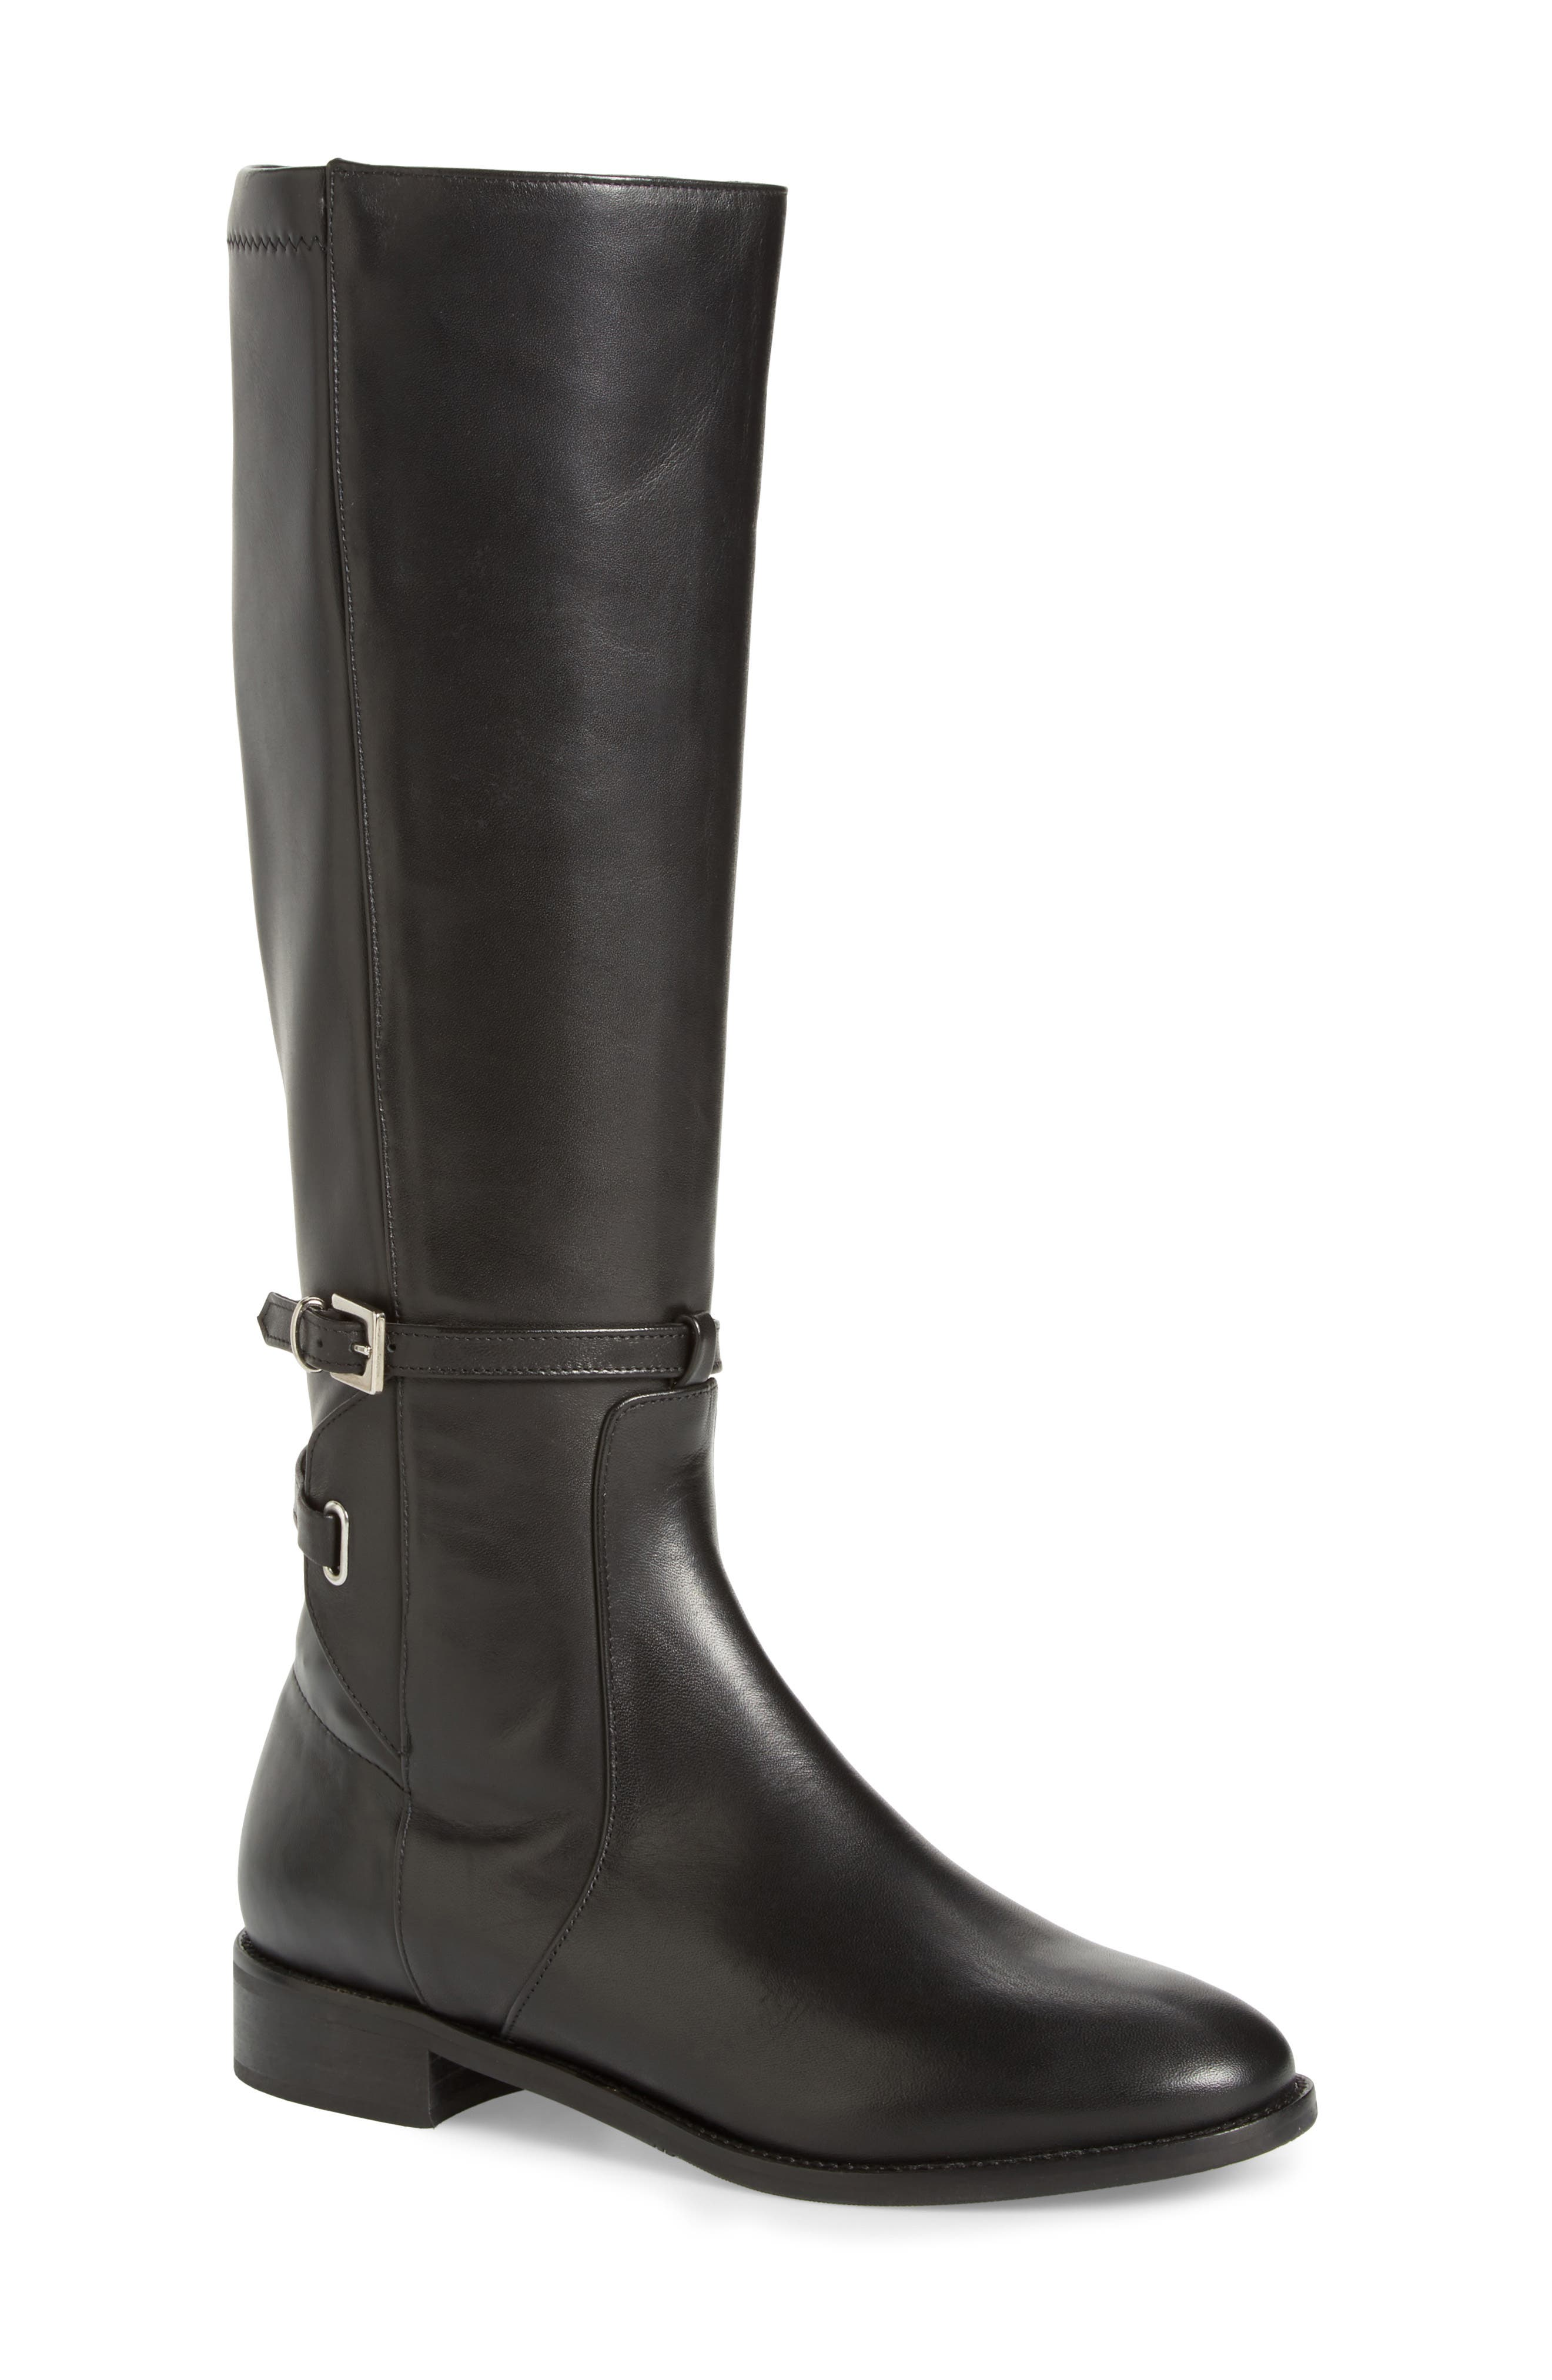 CHARLES DAVID Royce Stretch Back Riding Boot